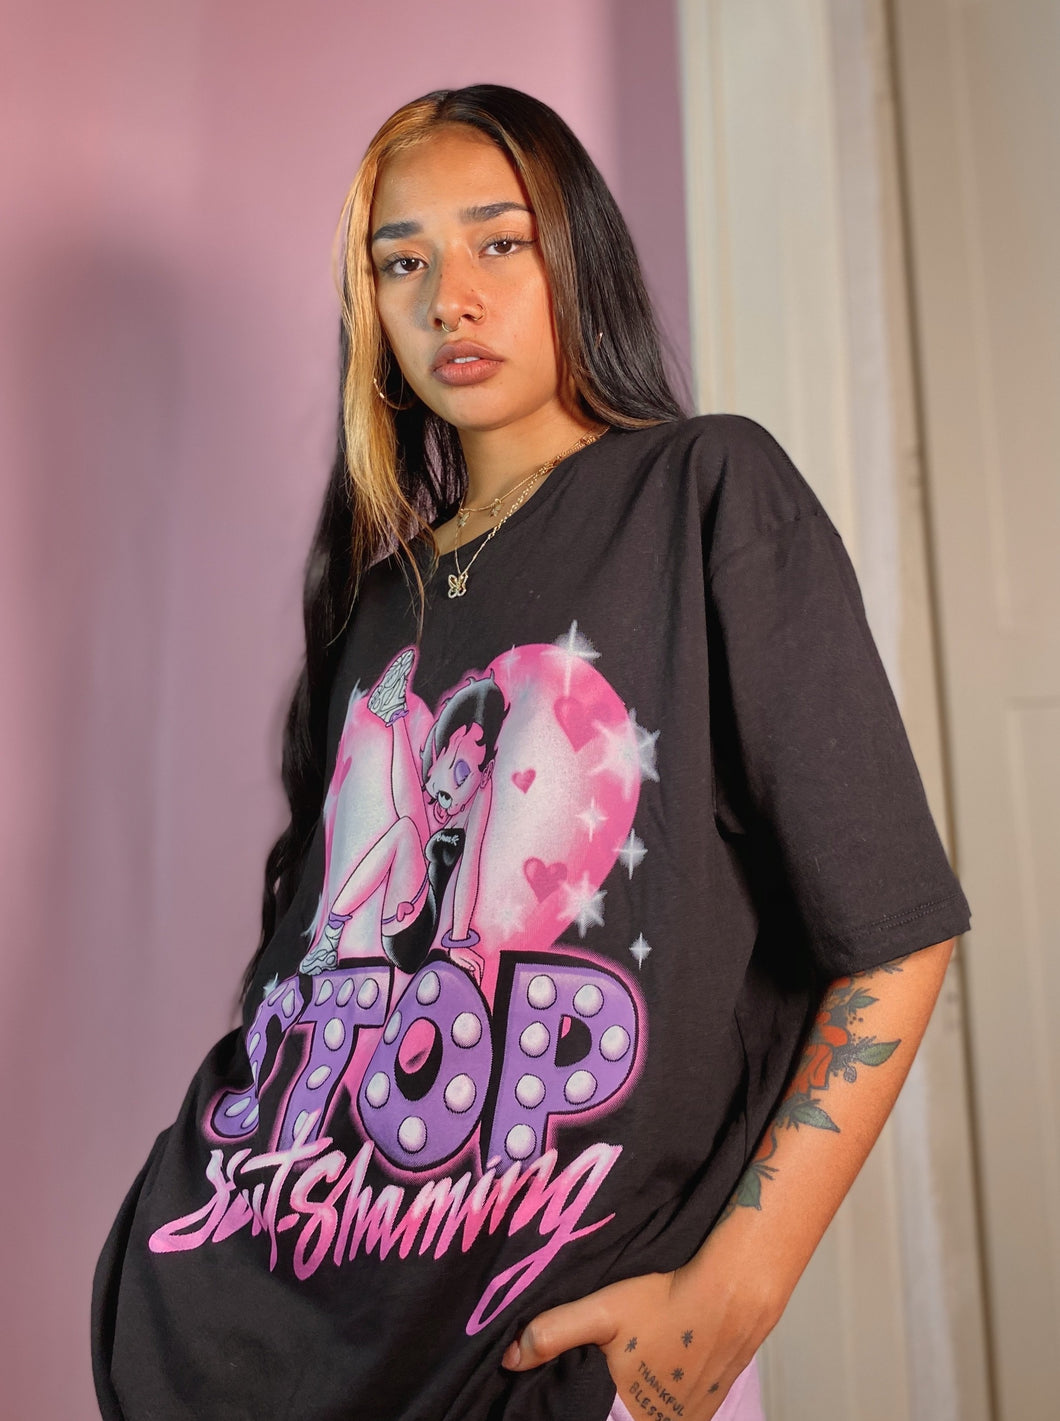 Stop Slut shaming airbrush style Pre sale ships in two weeks